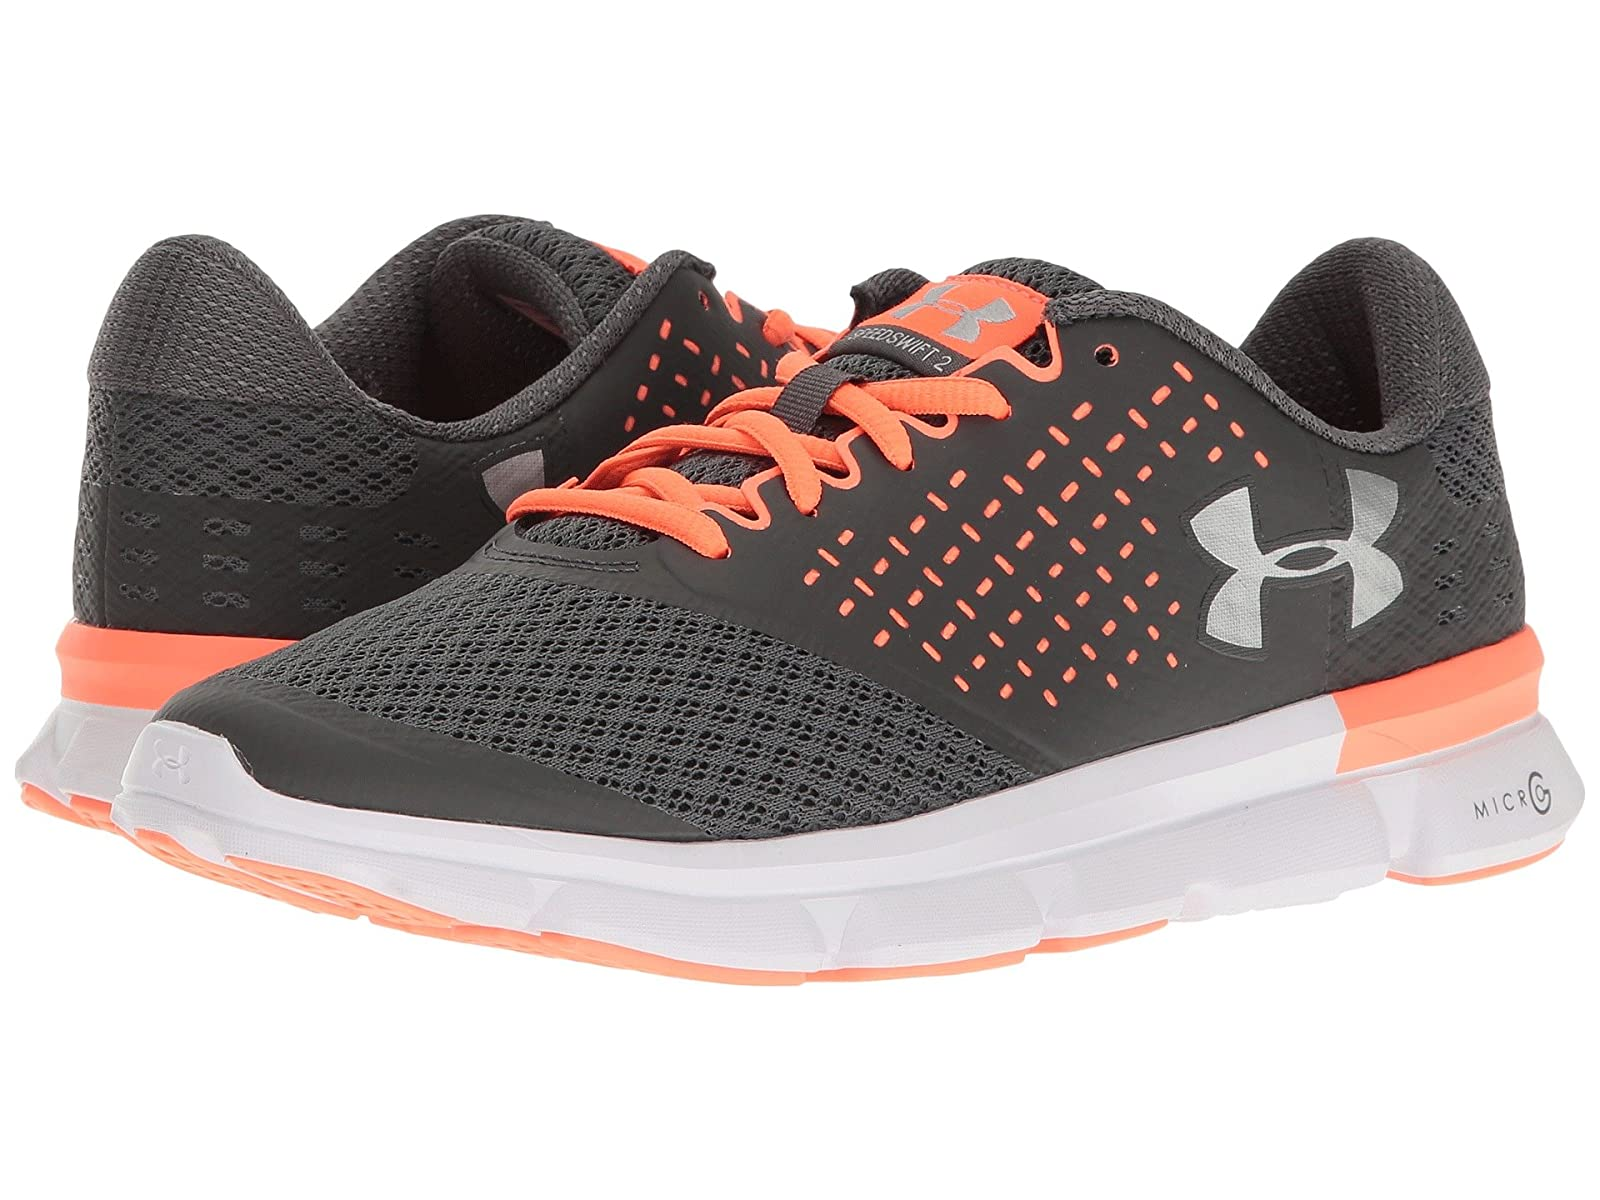 Under Armour UA Micro G Speed Swift 2Atmospheric grades have affordable shoes